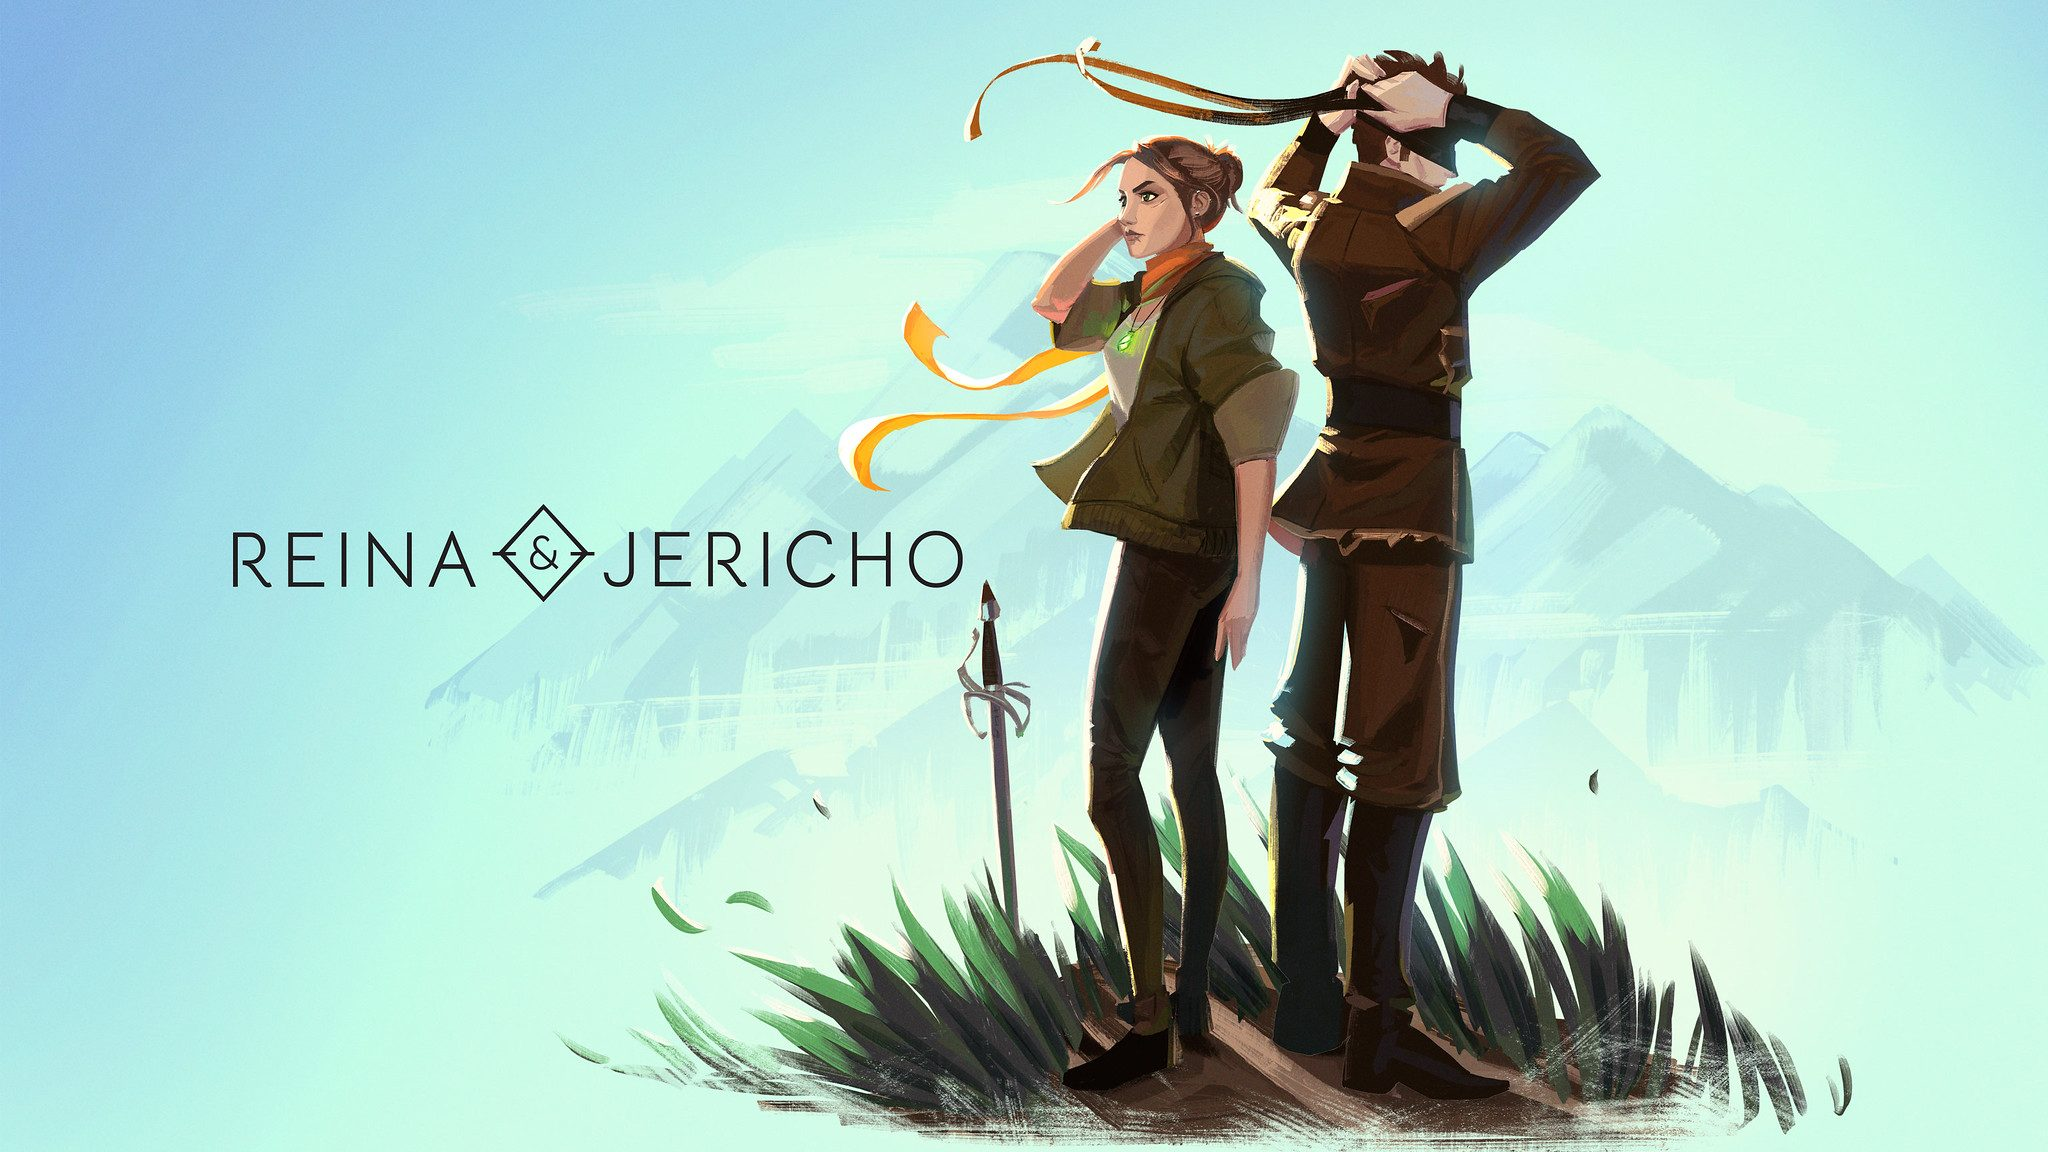 tale-pushed-second-motion-exploration-activity-reina-&-jericho-coming-to-ps5